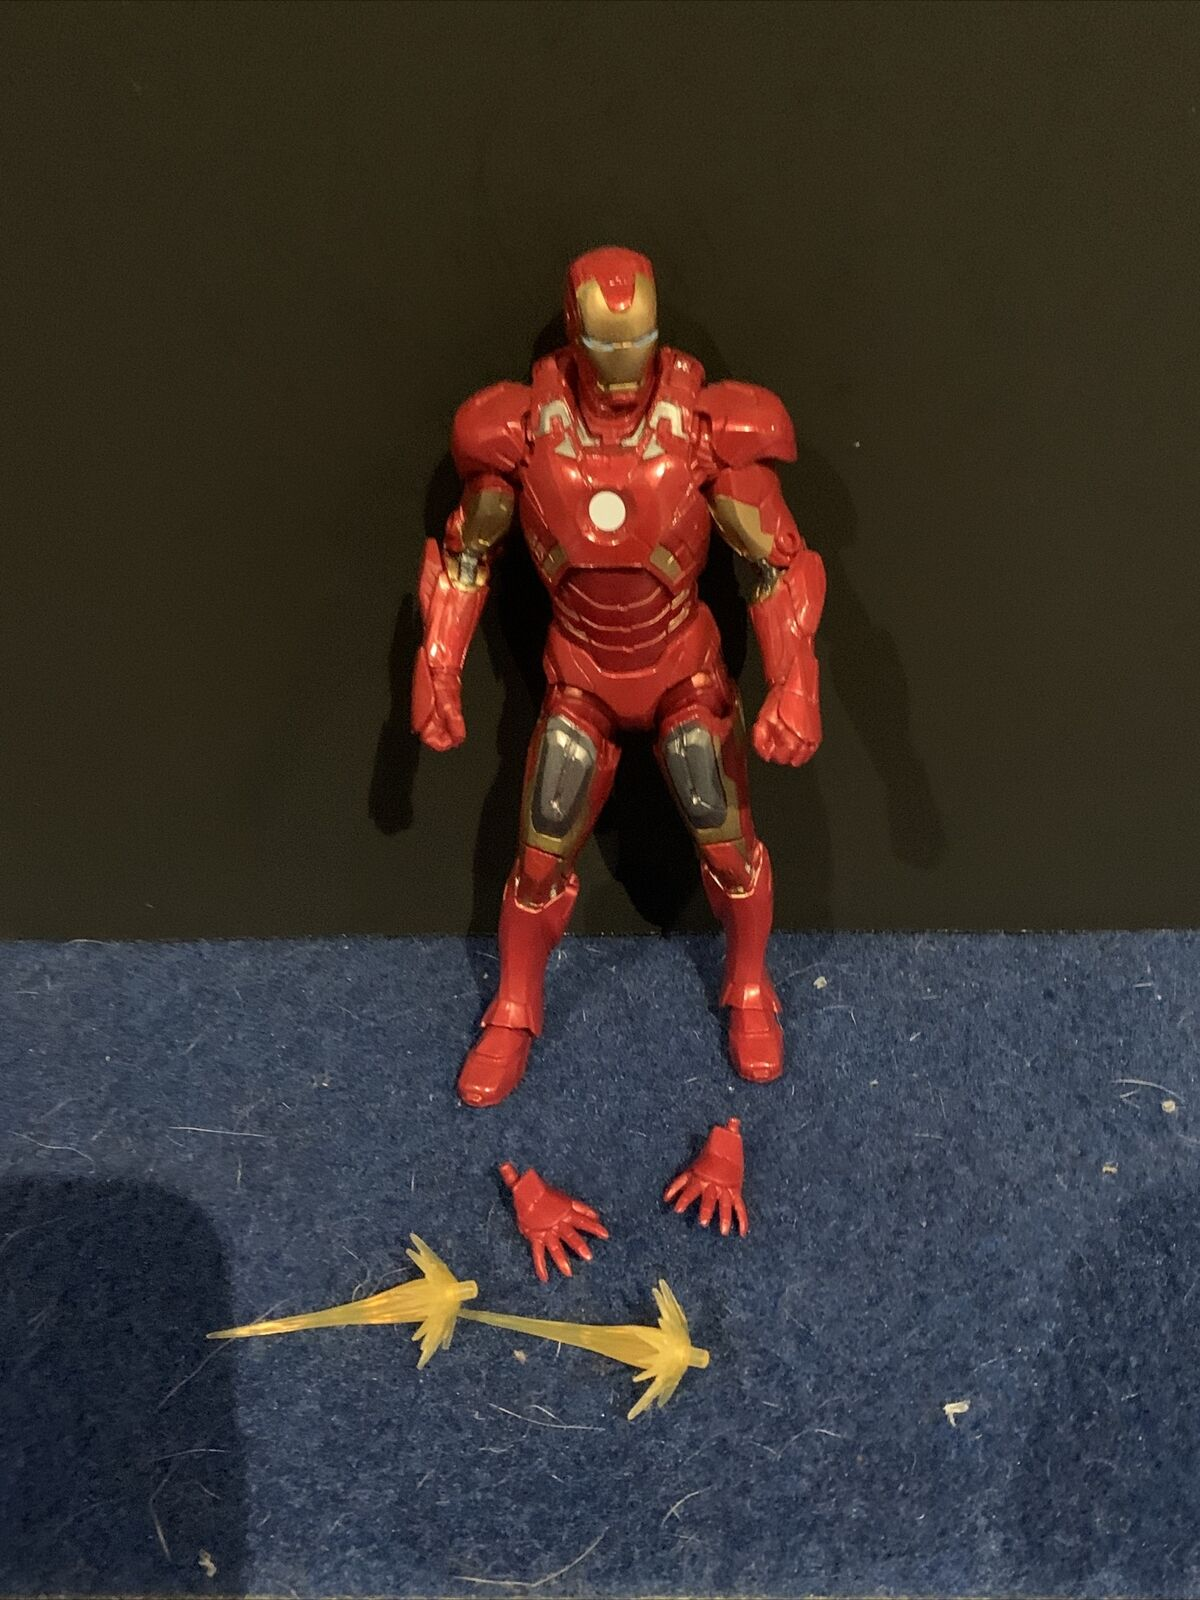 Marvel Legends Iron Man MCU Marvel Studios The First 10 Years on eBay thumbnail